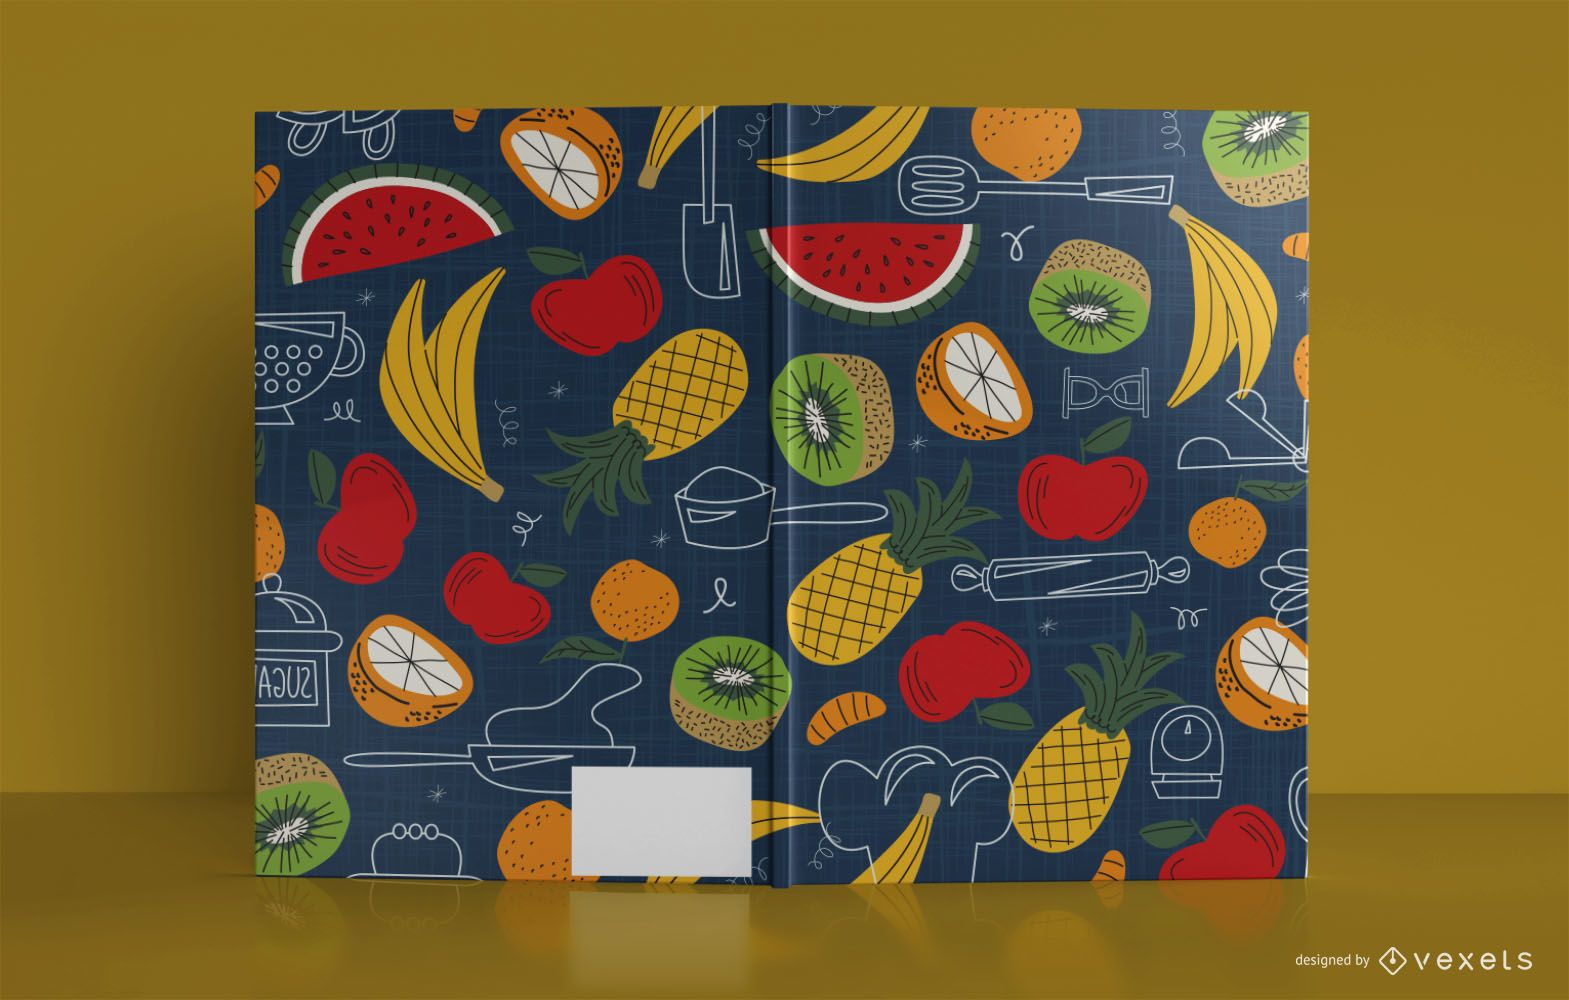 Artistic Food Journal Book Cover Design